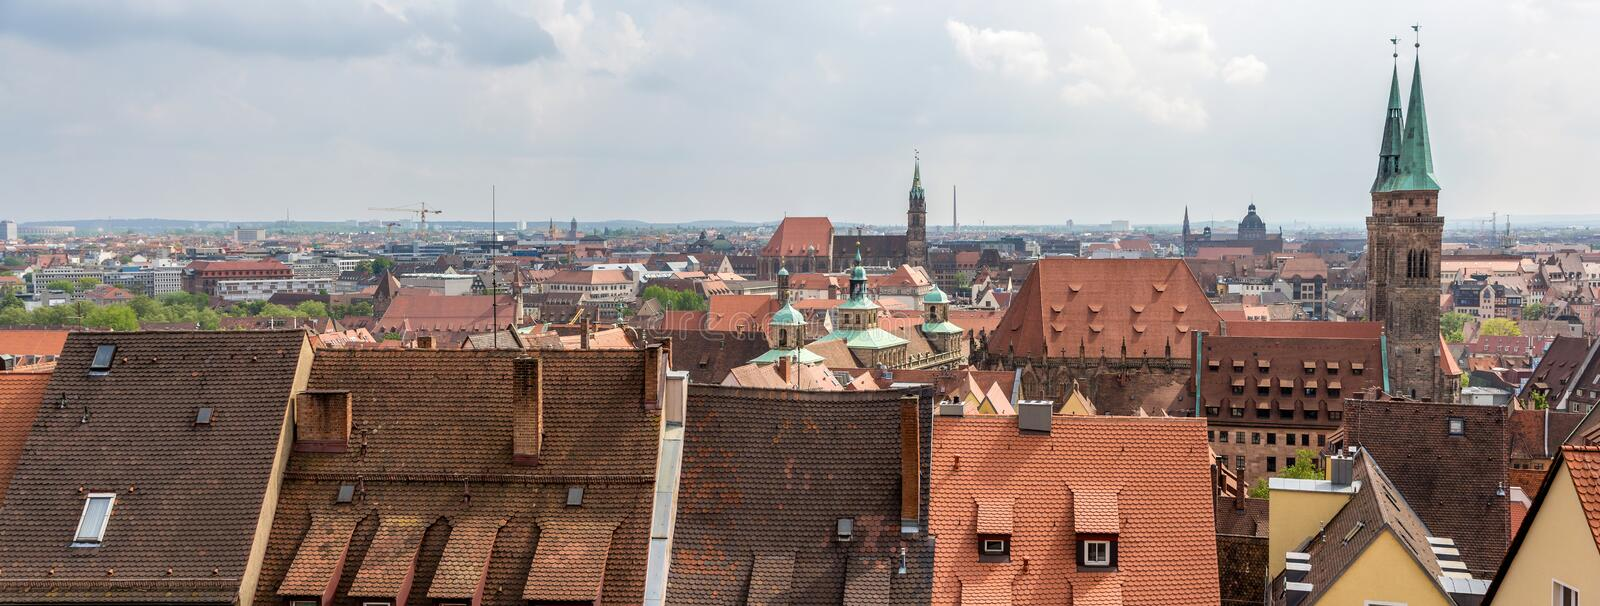 View of Nuremberg from the castle royalty free stock photo